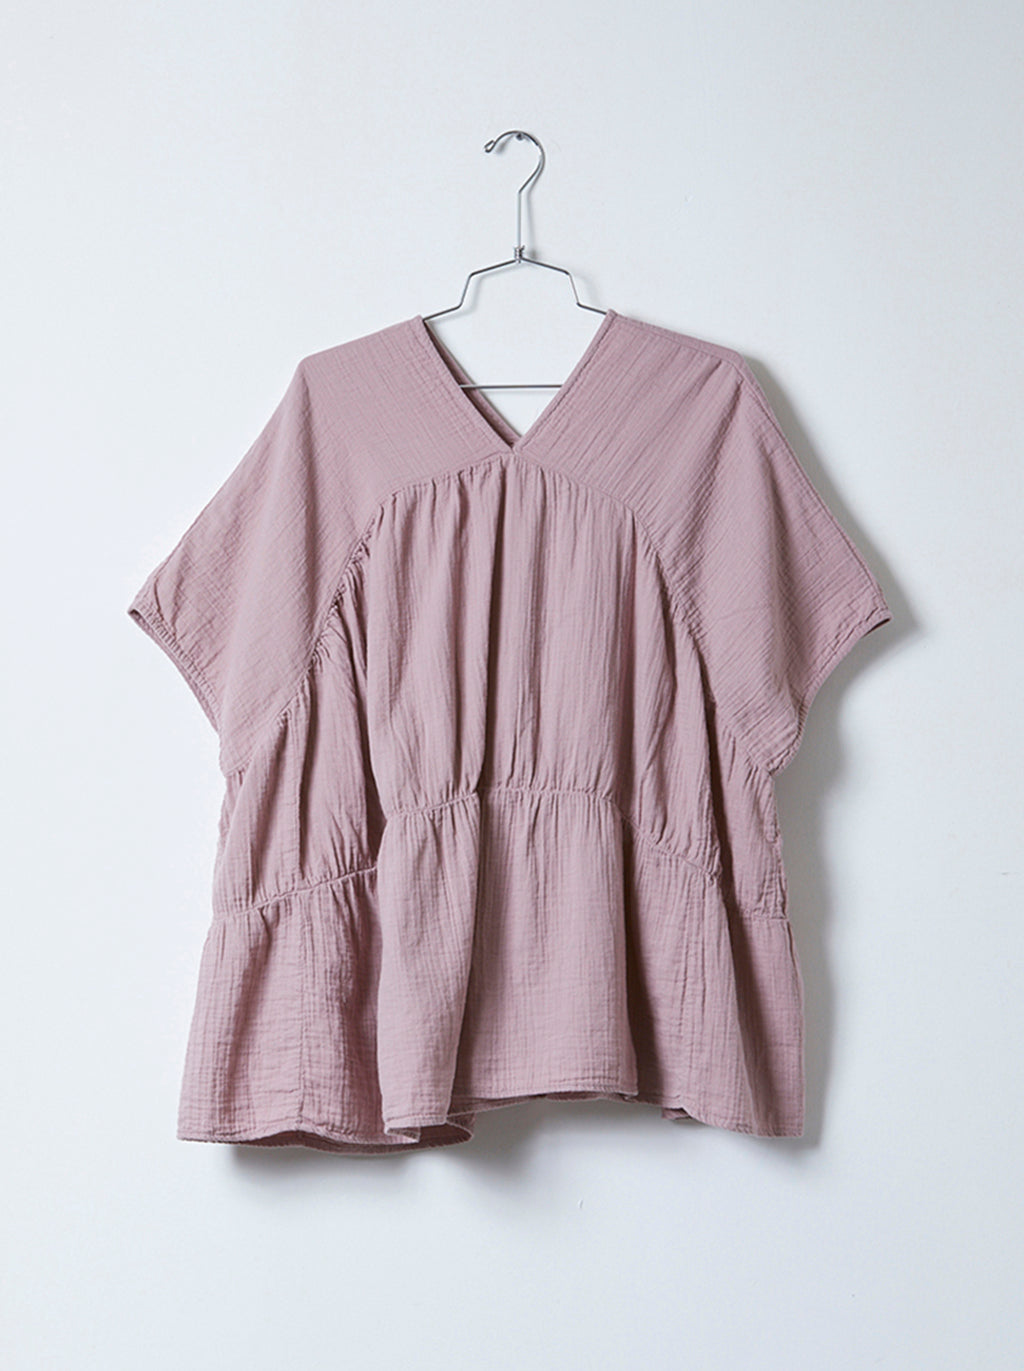 Lihue Tunic in Crinkled Cotton, More Colors